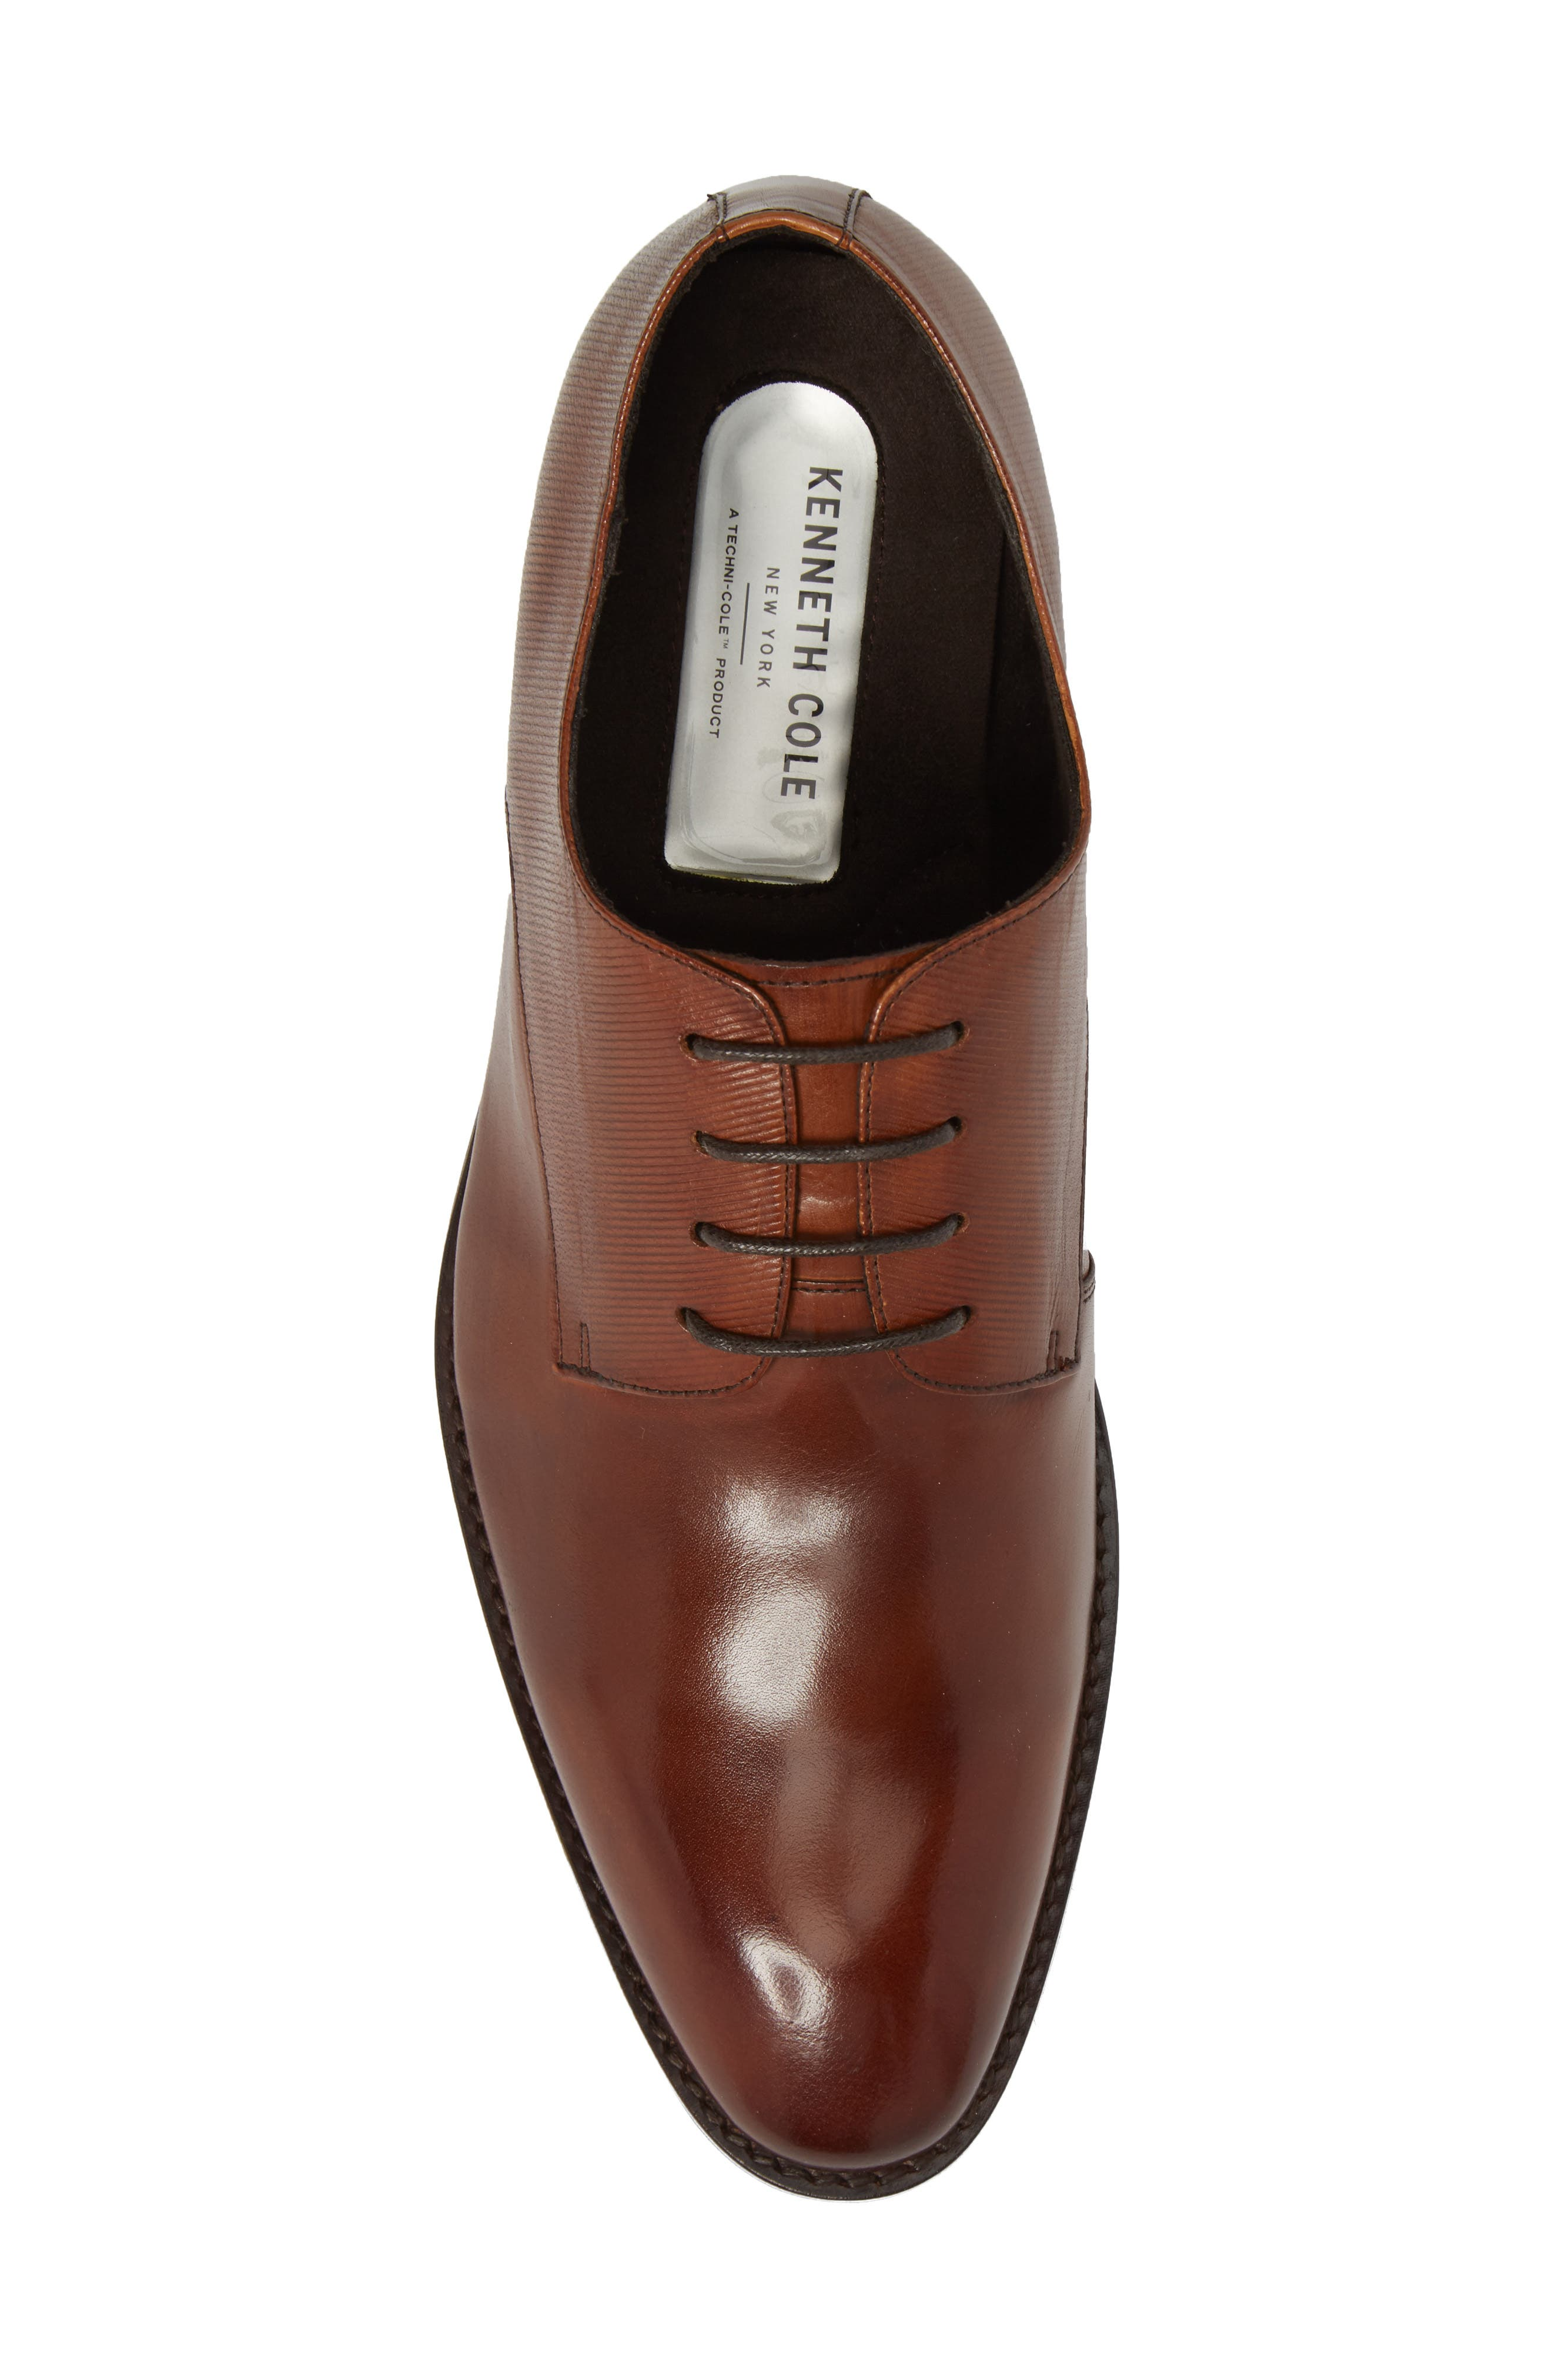 KENNETH COLE NEW YORK, Courage Plain Toe Derby, Alternate thumbnail 5, color, 200